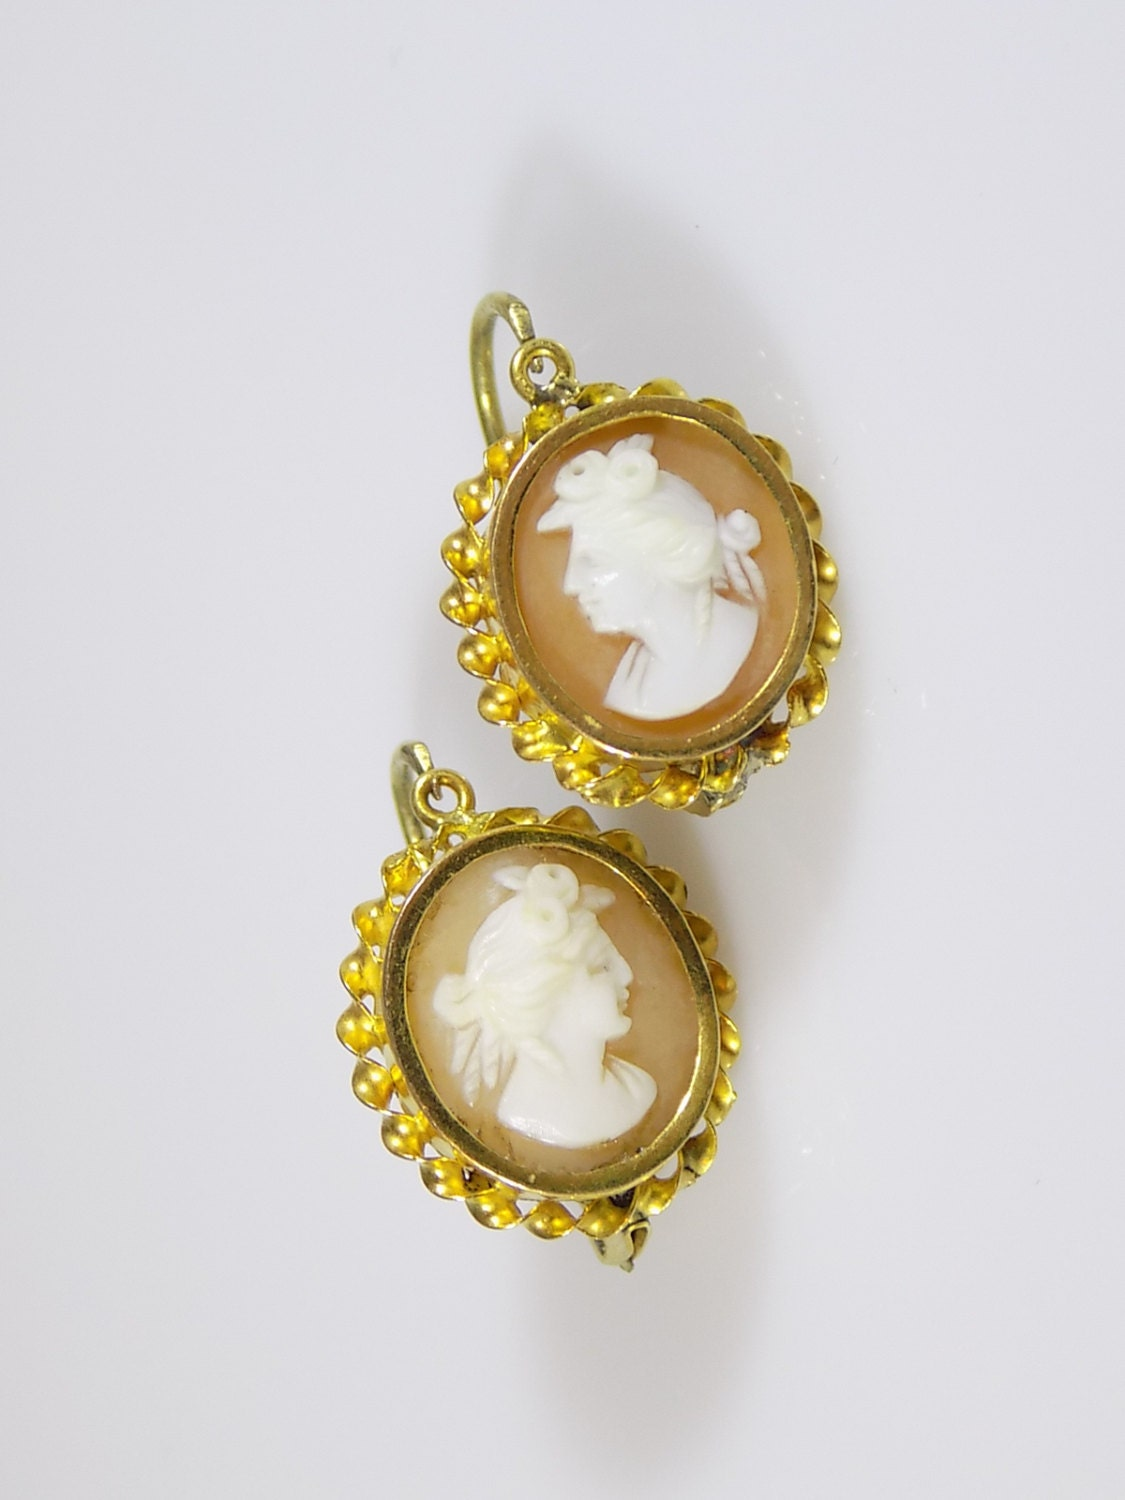 Antique Victorian Era c.18601880 14 Carat yellow Gold and carved Shell Cameo earrings Fine jewellery Gift for Her